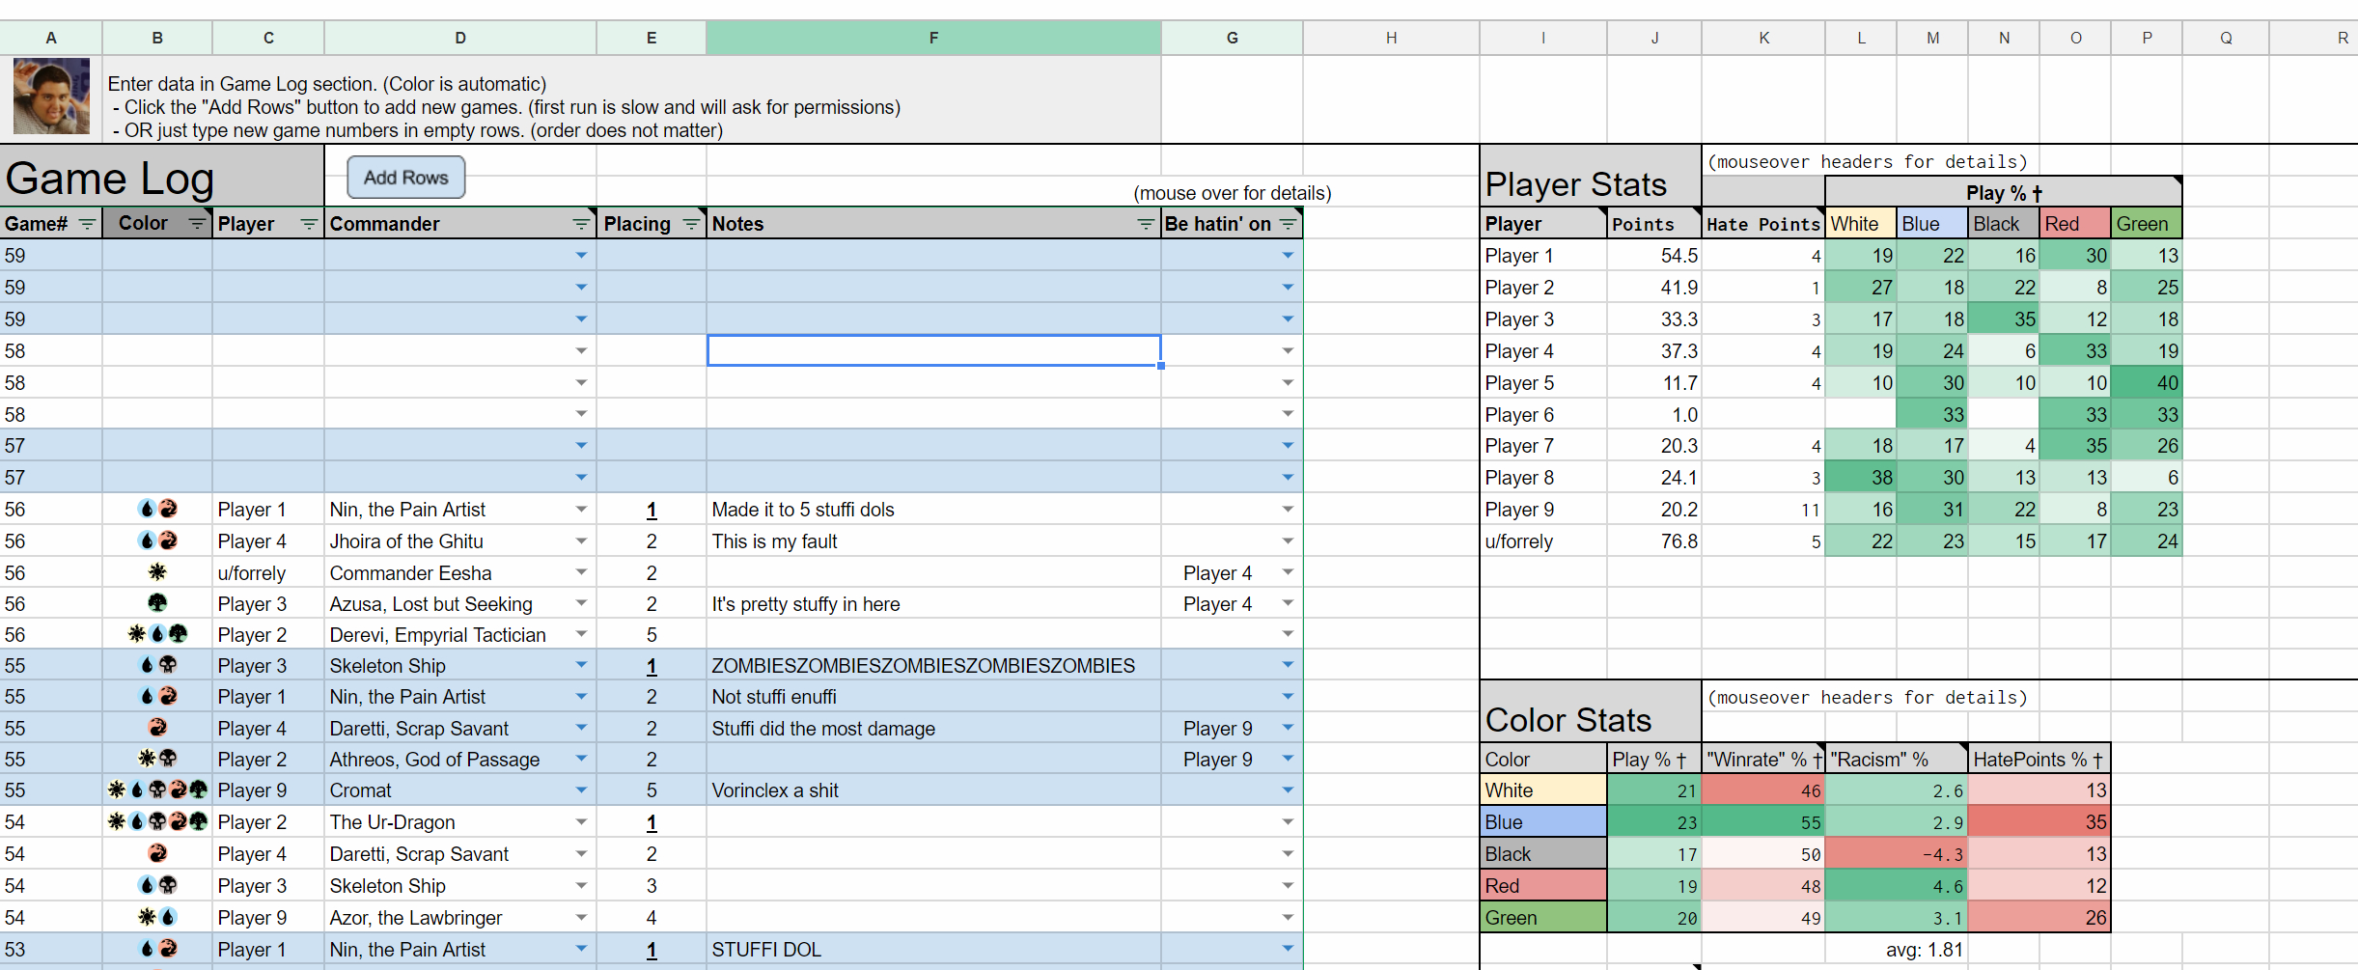 Magic The Gathering Spreadsheet Pertaining To Working On A Spreadsheet For Recording Games. : Edh